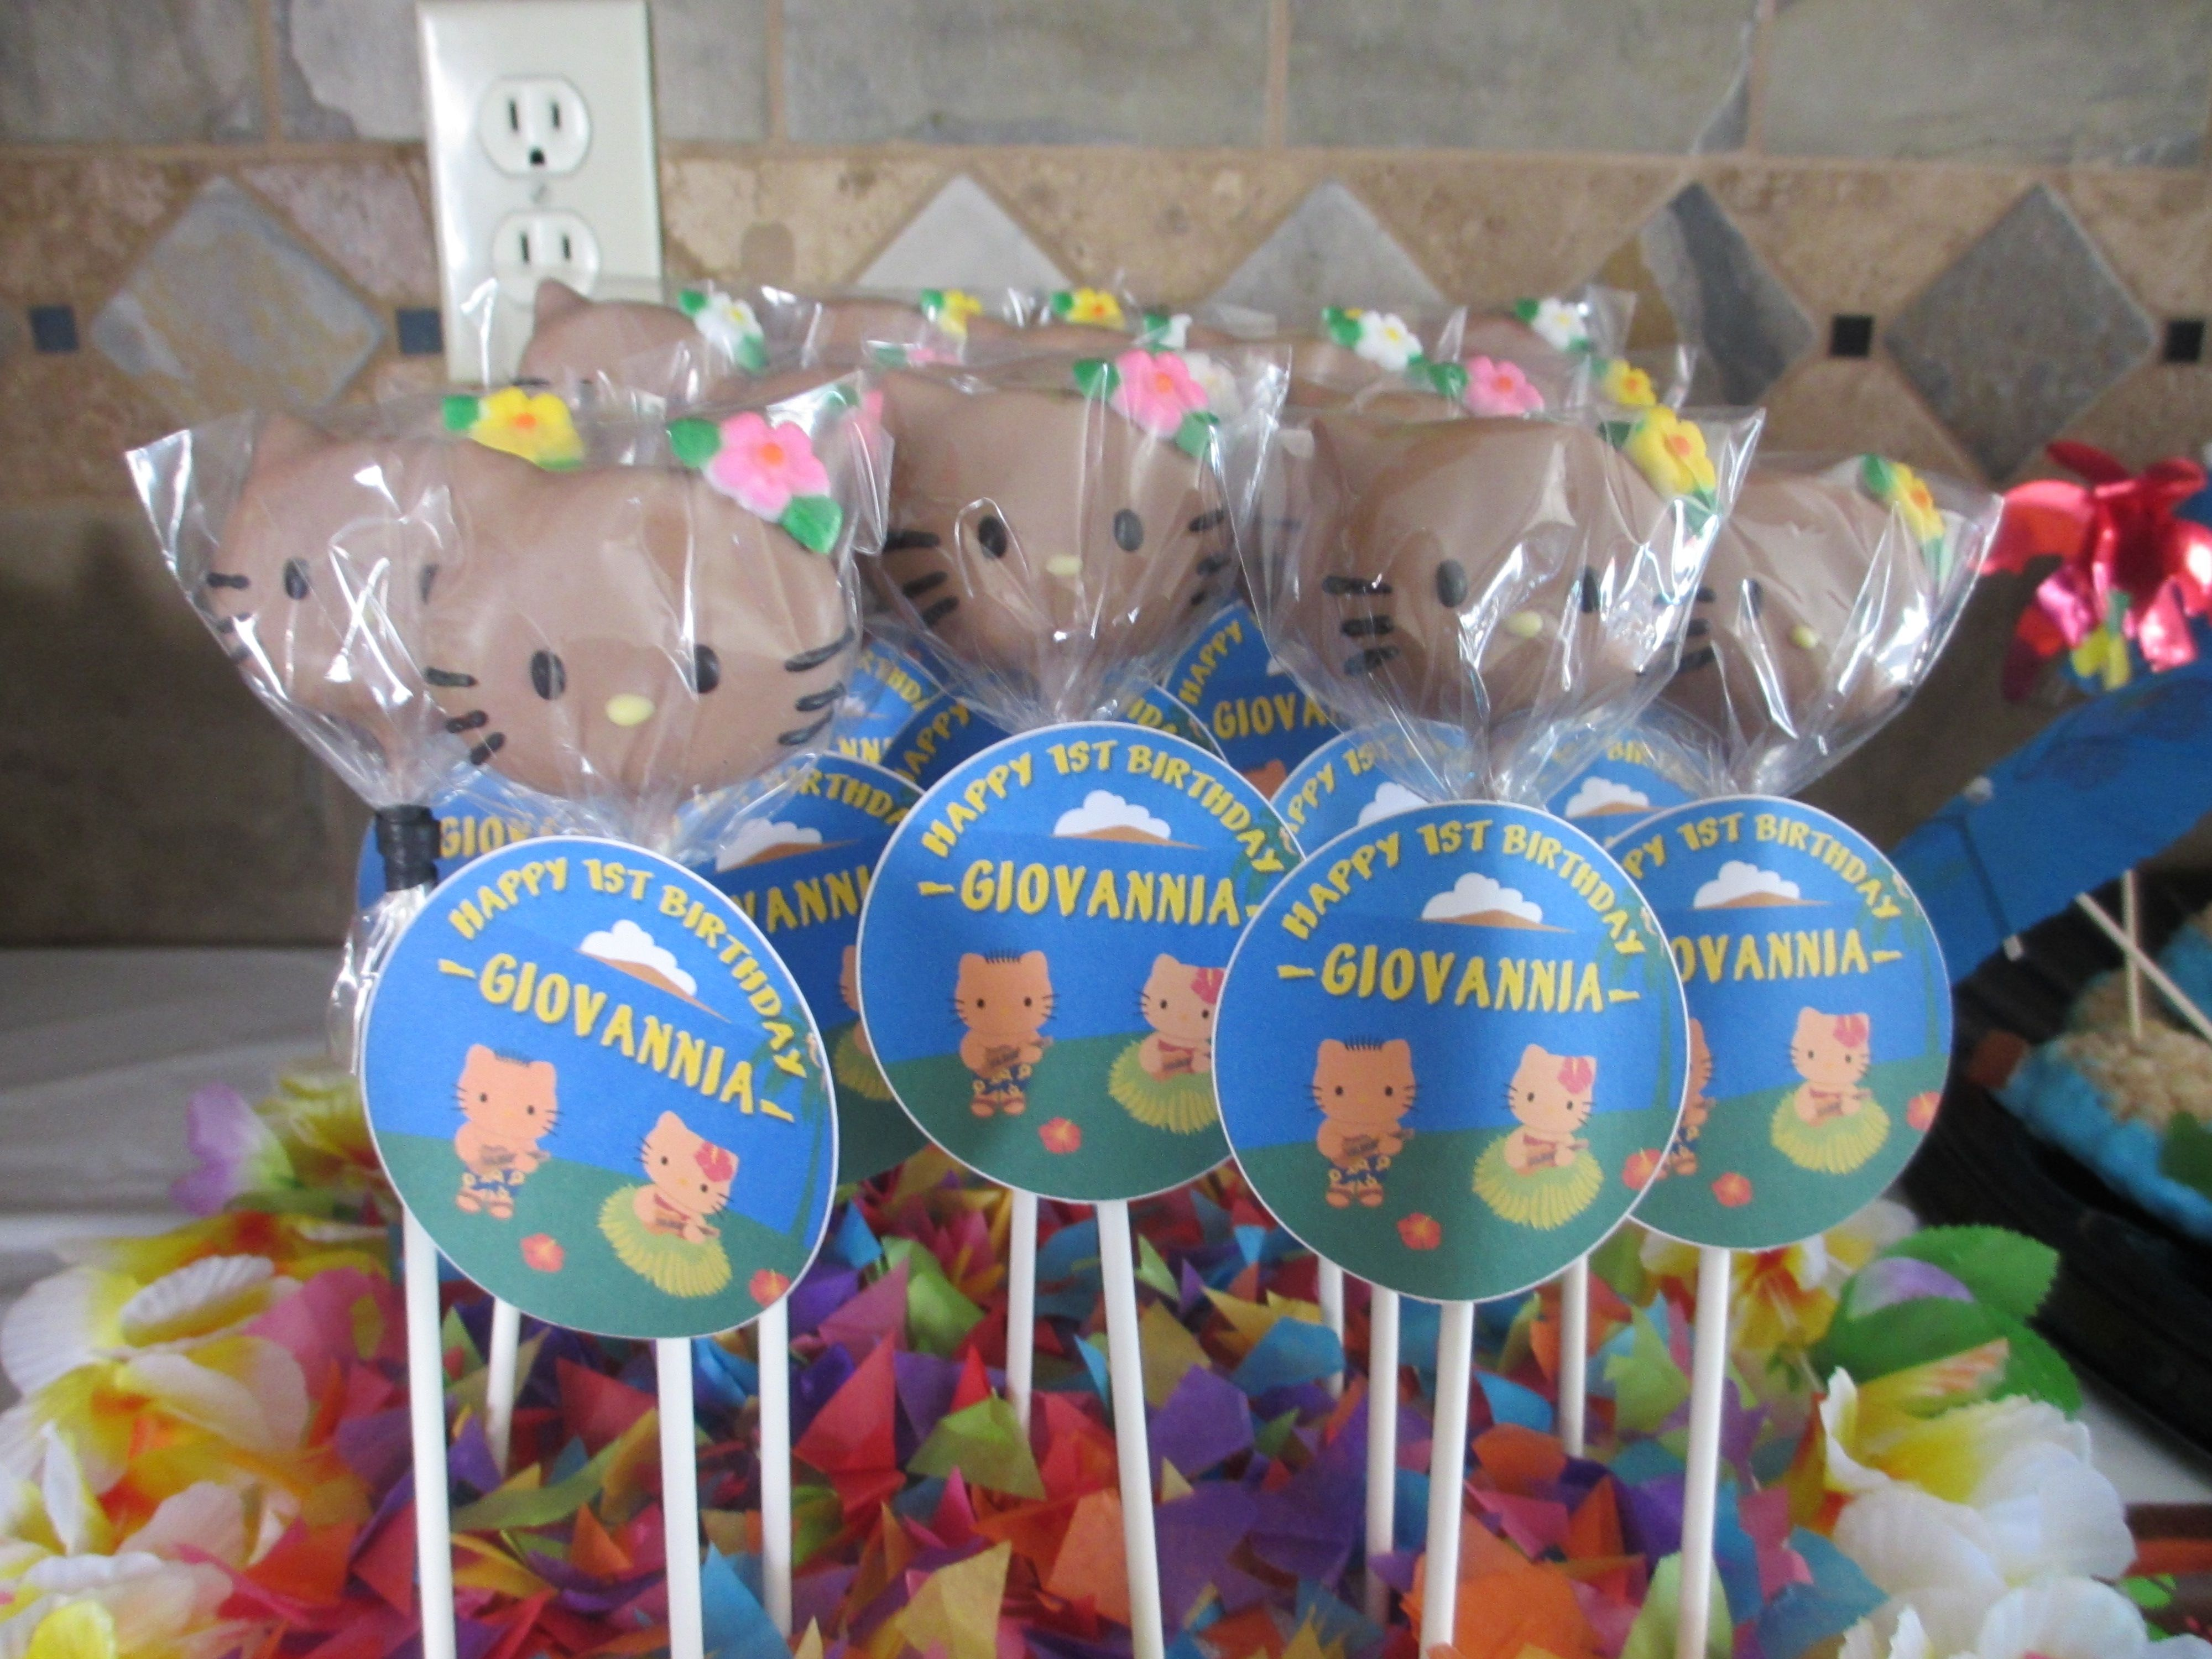 Hawaiian Hello Kitty cake pops by IRIE CAKES delicious Giovannias